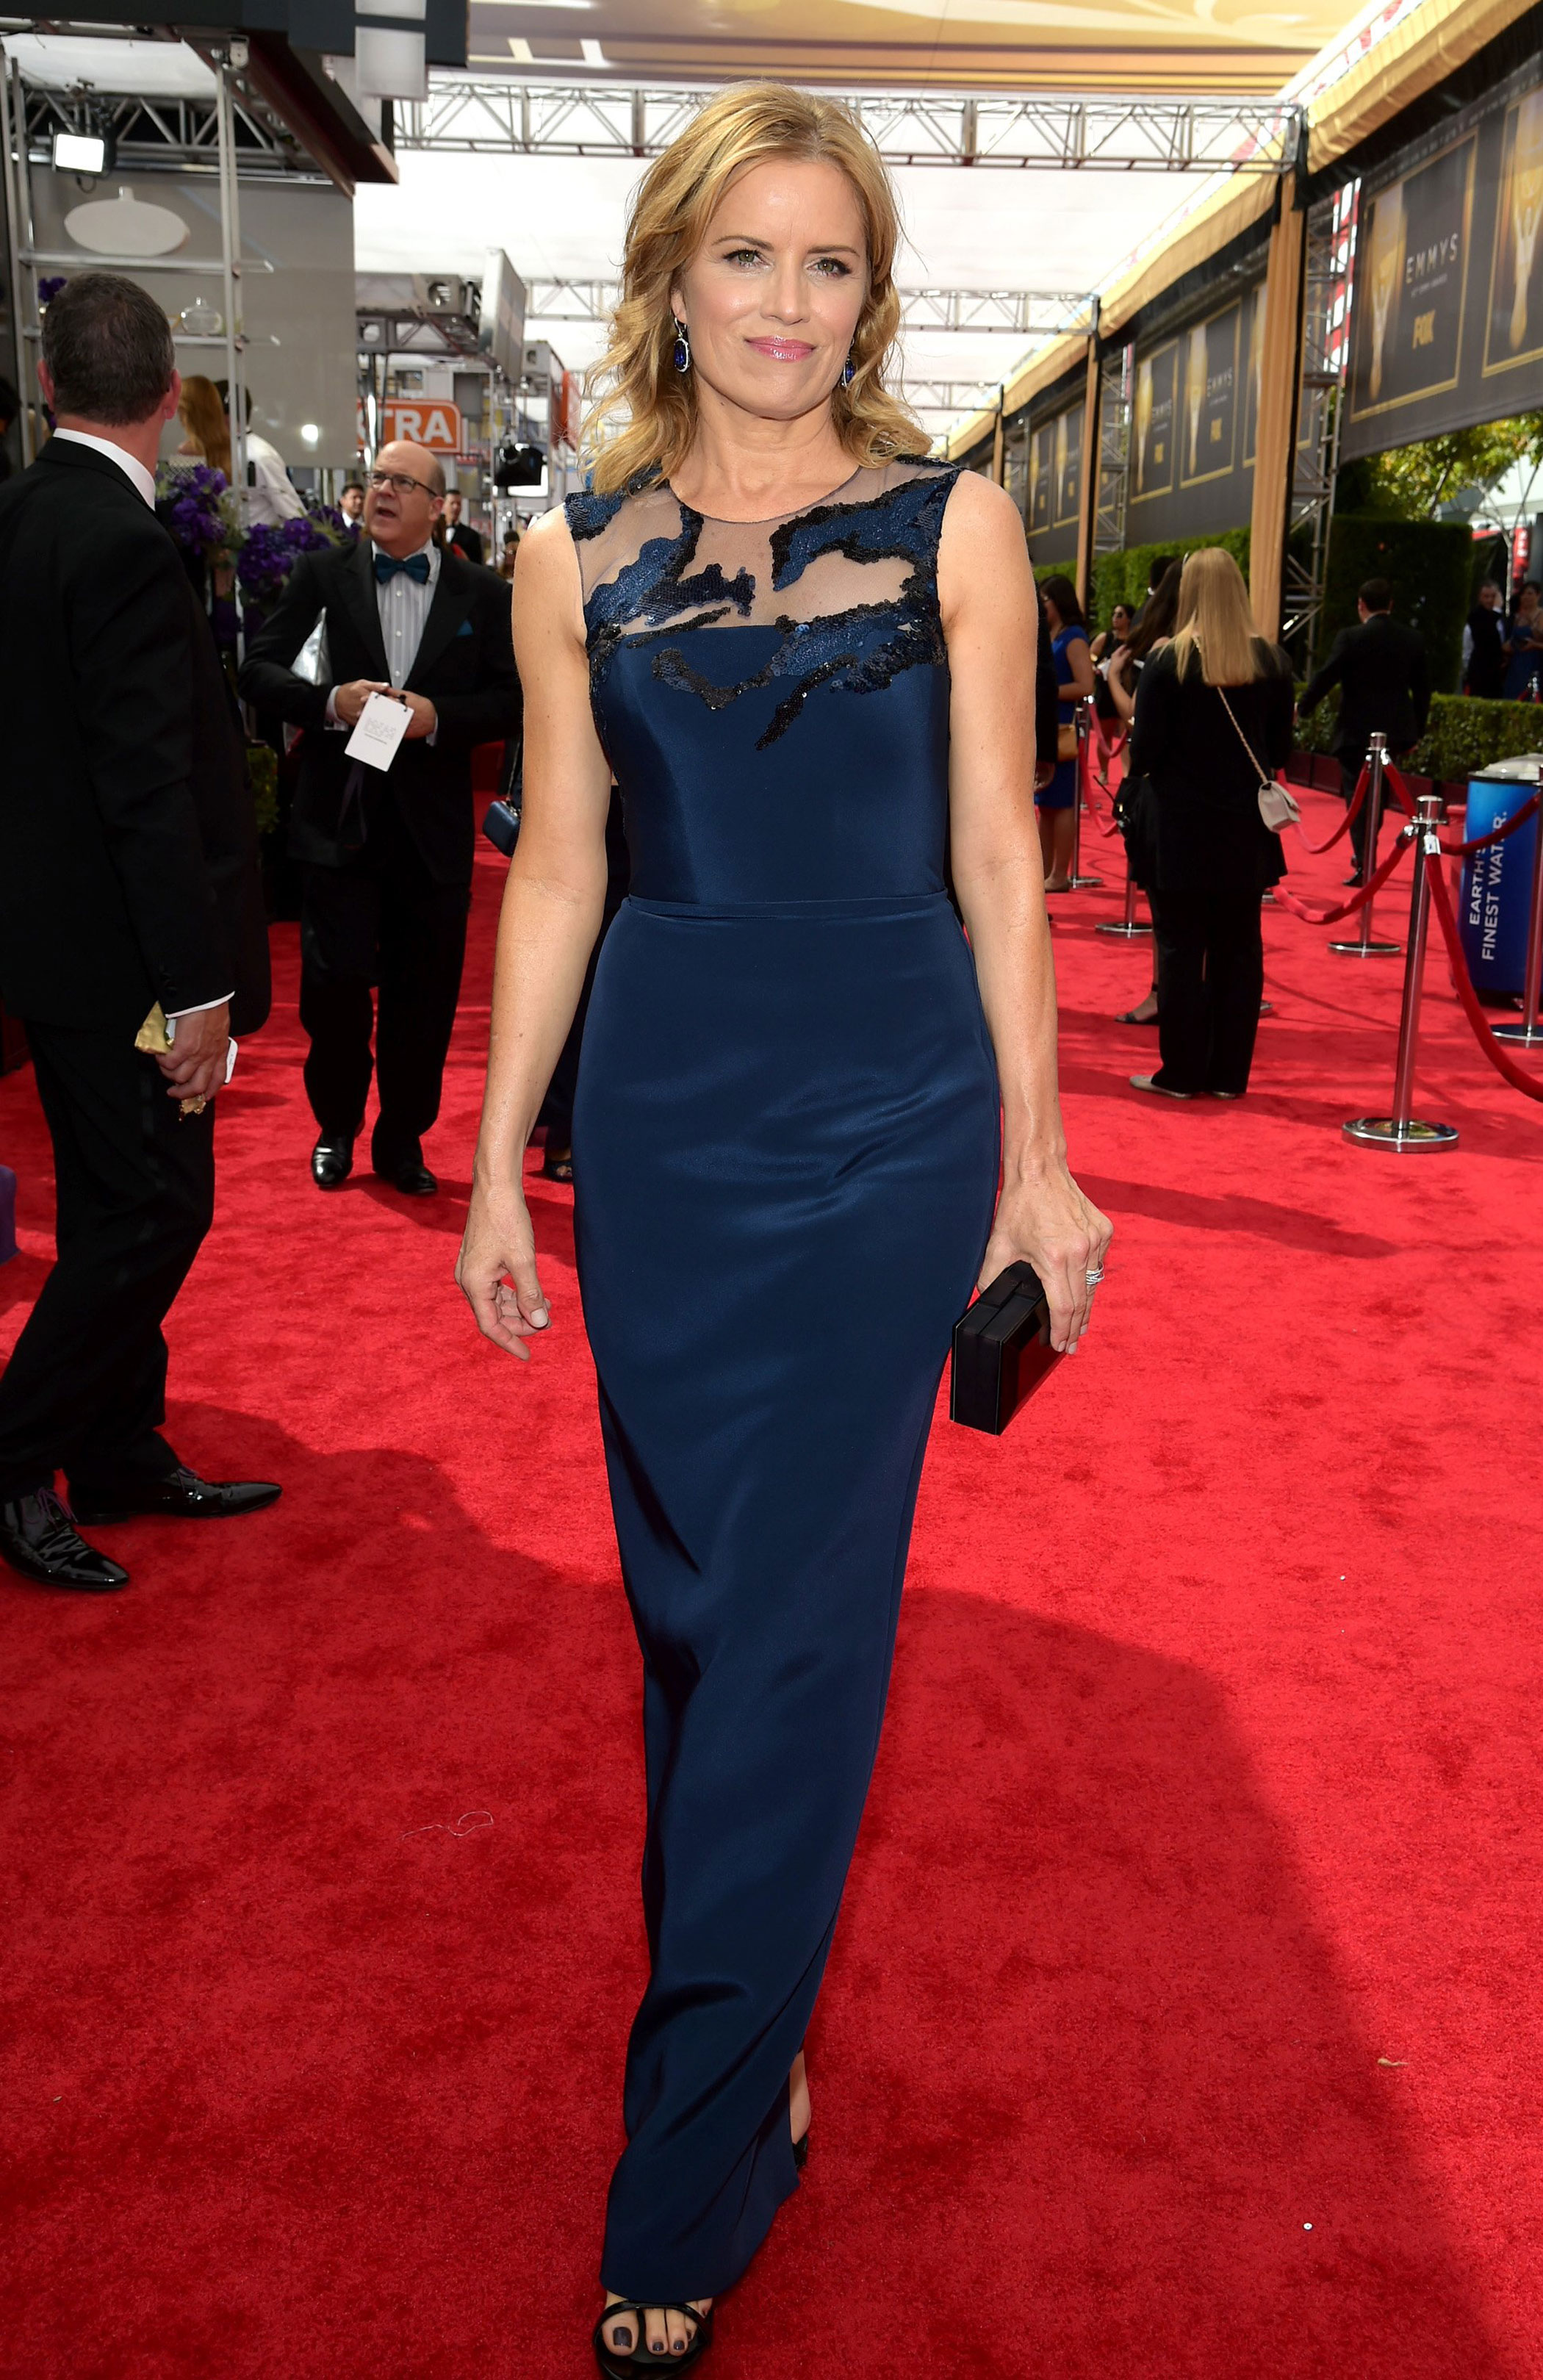 Kim Dickens at the 67th Emmy Award on Sept. 20, 2015 in Los Angeles.